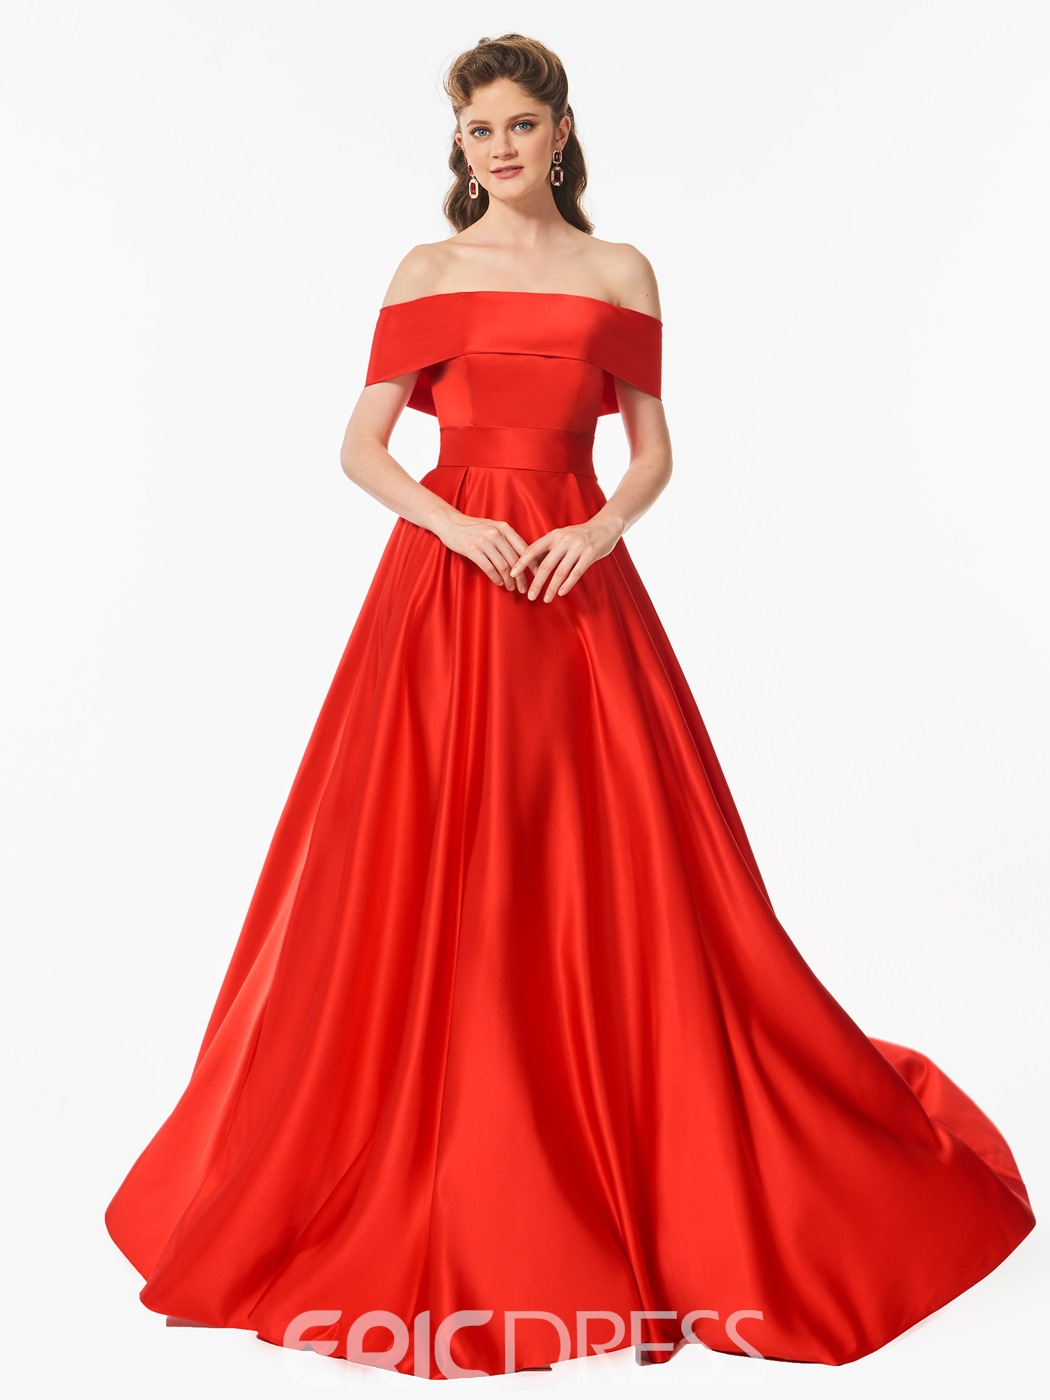 Ericdress A Line Off The Shoulder Long Prom Dress With Bowknot Back